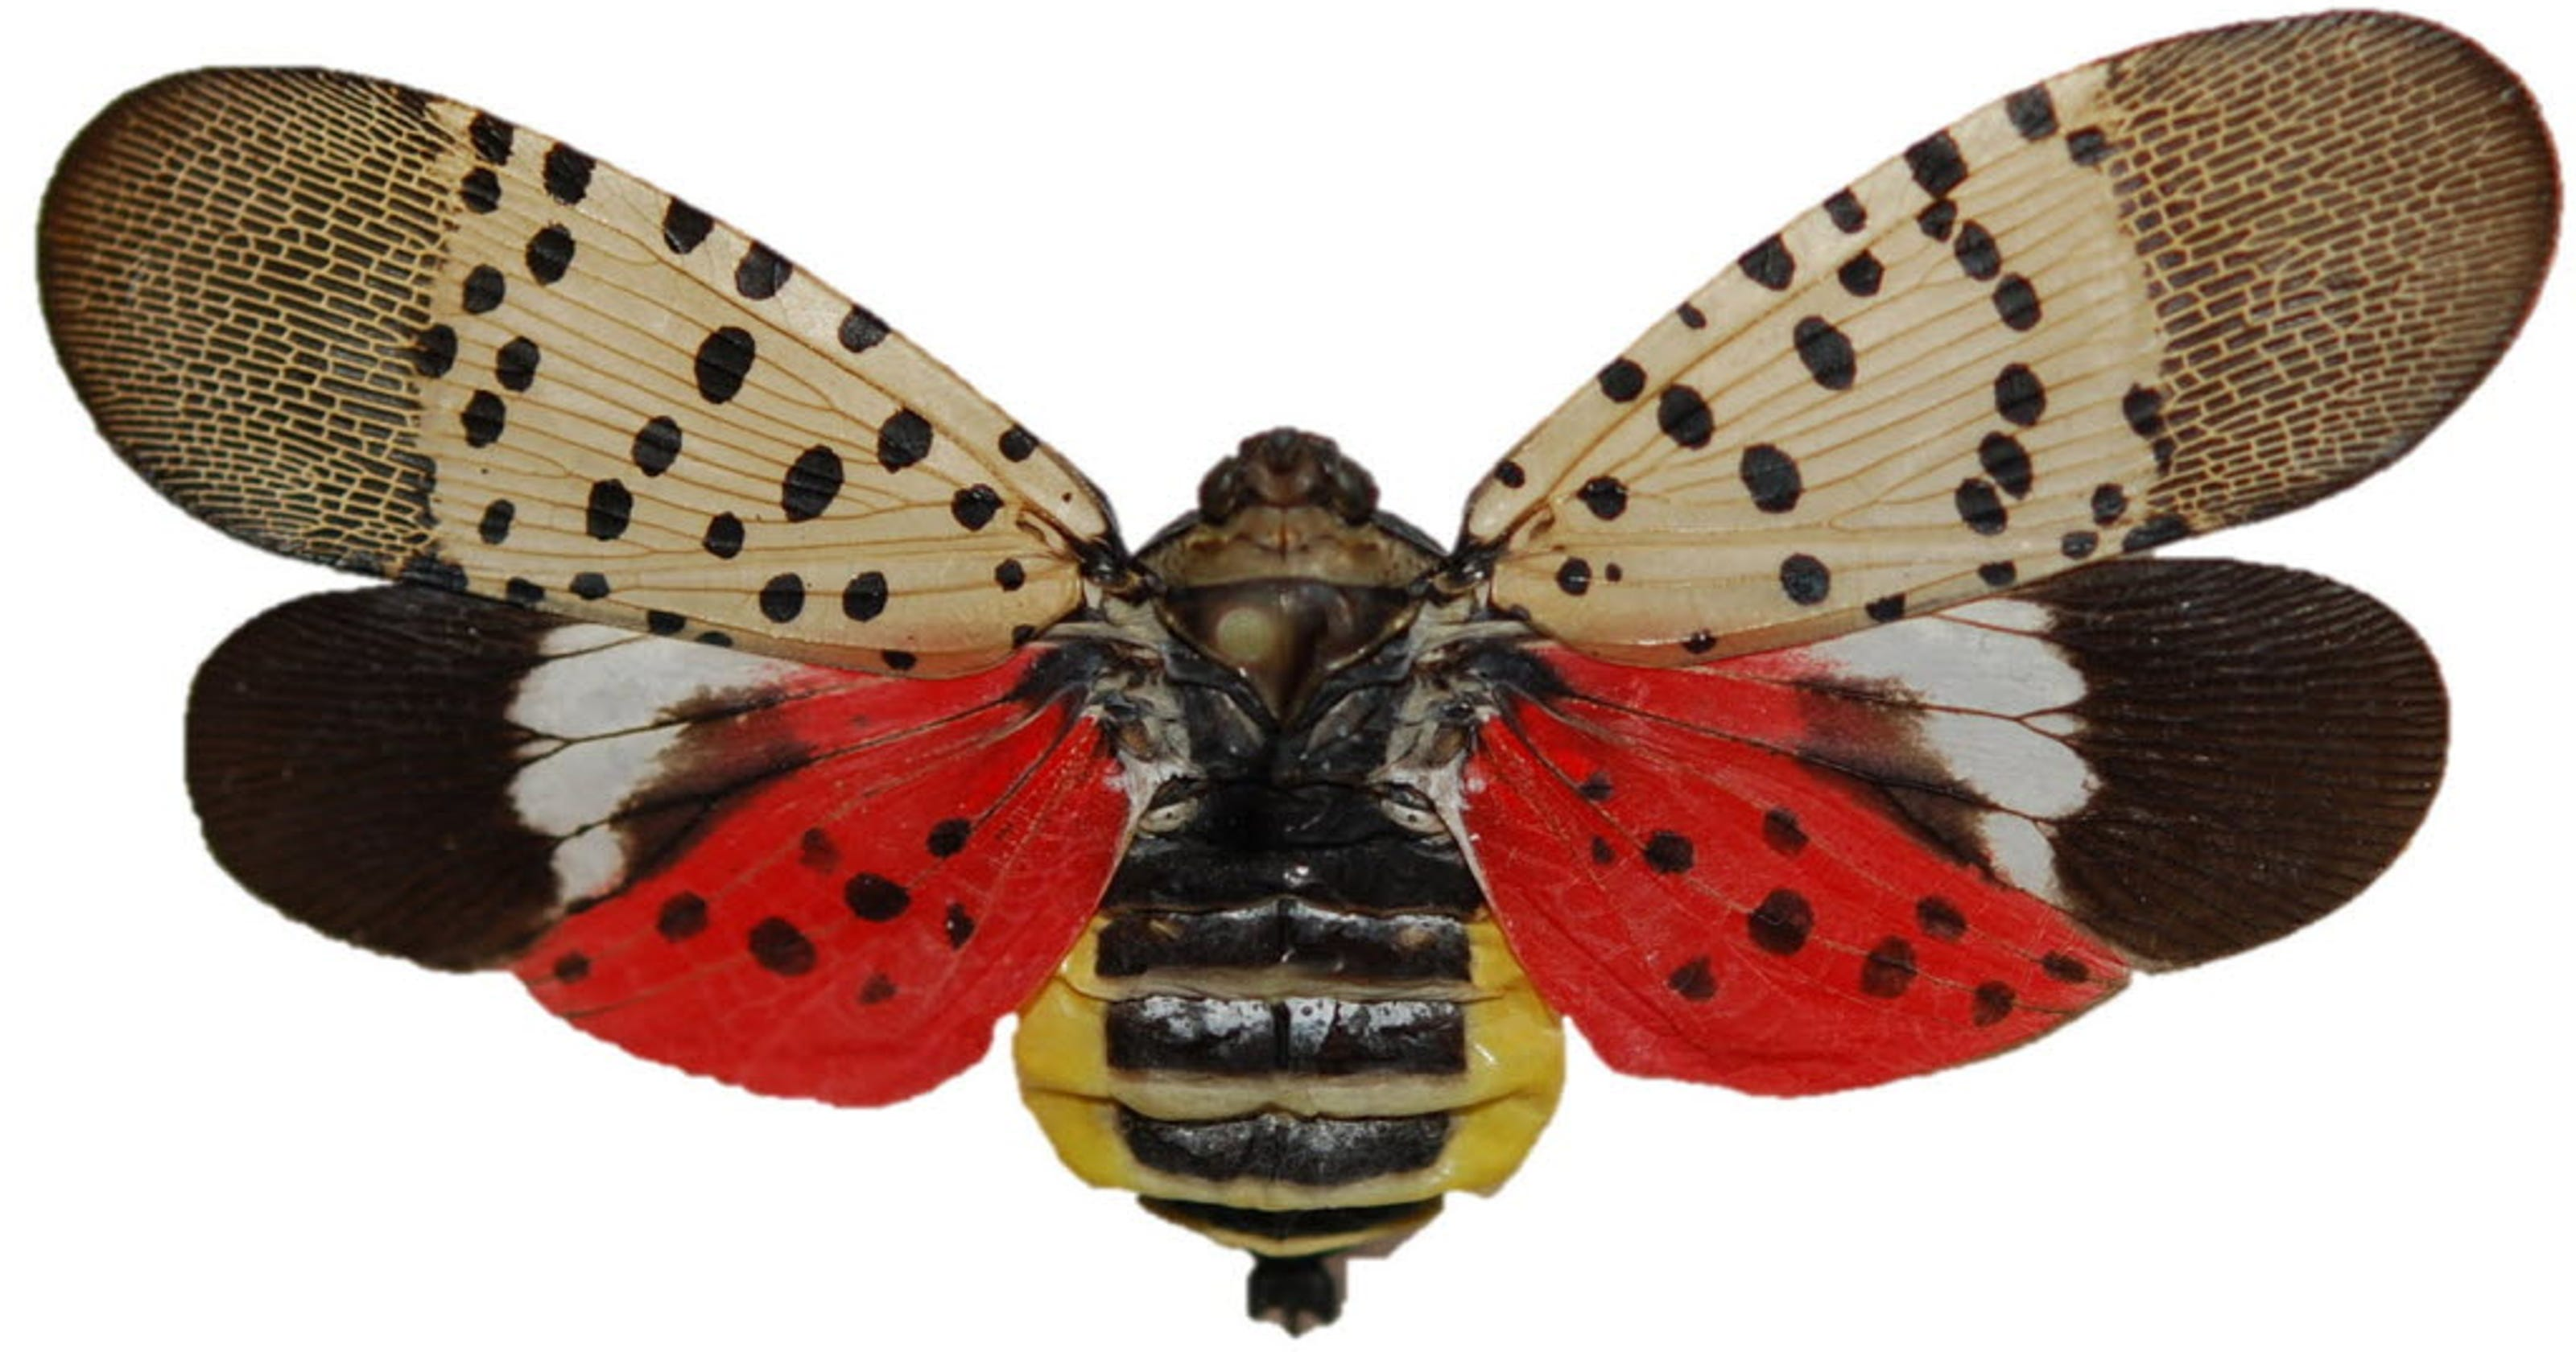 Spotted lantern fly in Pa : What they are, what to do if you